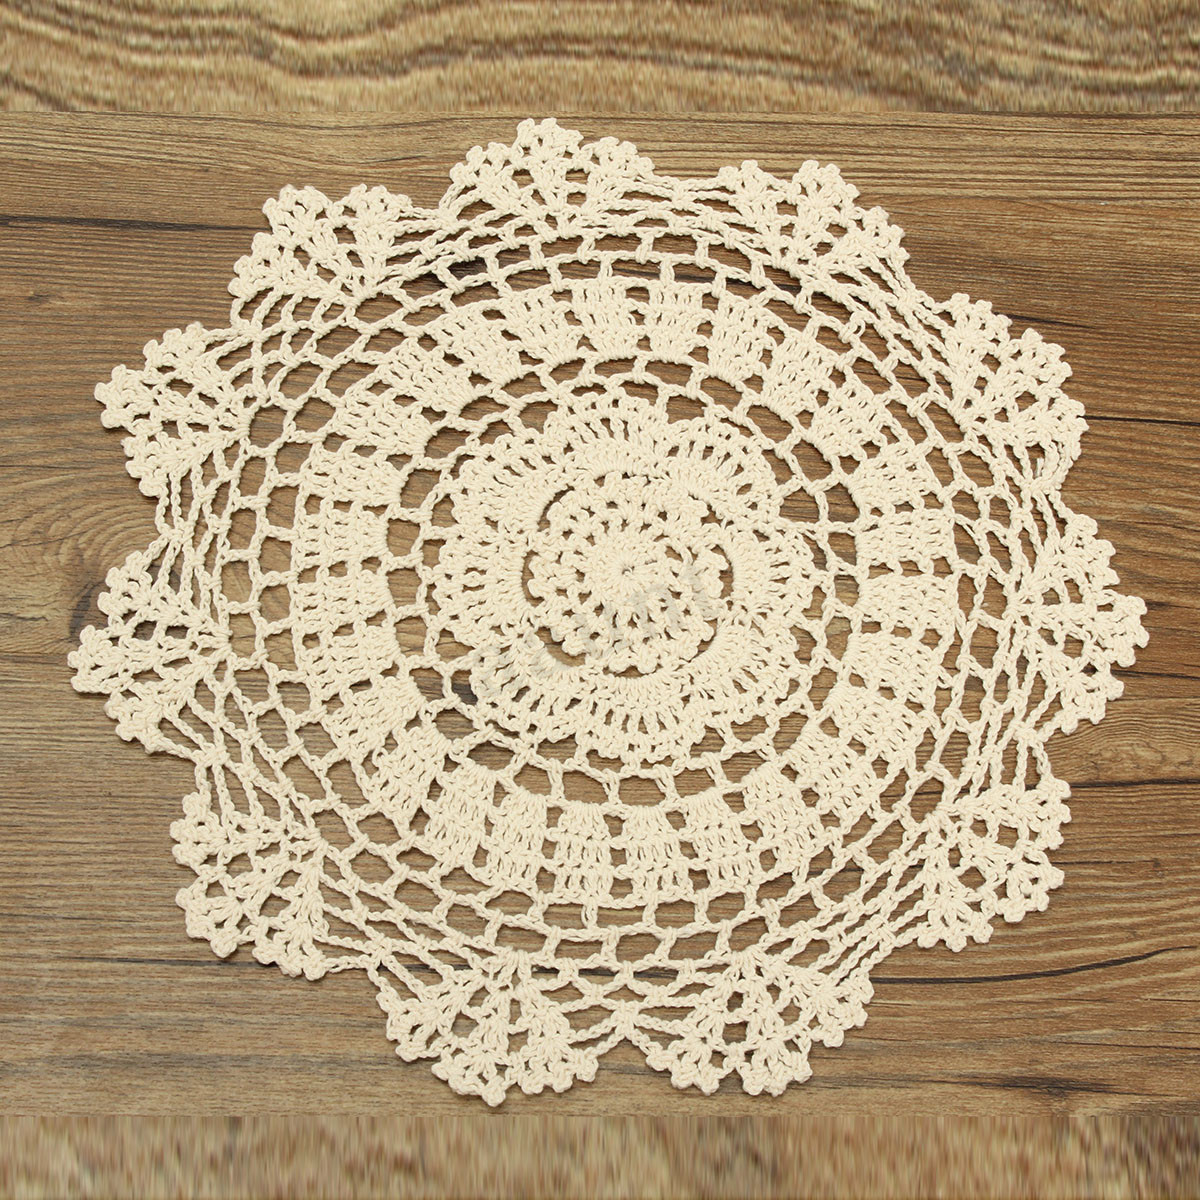 Cloth Lace Doilies Beautiful Hand Crocheted Cotton Yarn Round Lace Doily Mat Vintage Of Top 48 Pics Cloth Lace Doilies